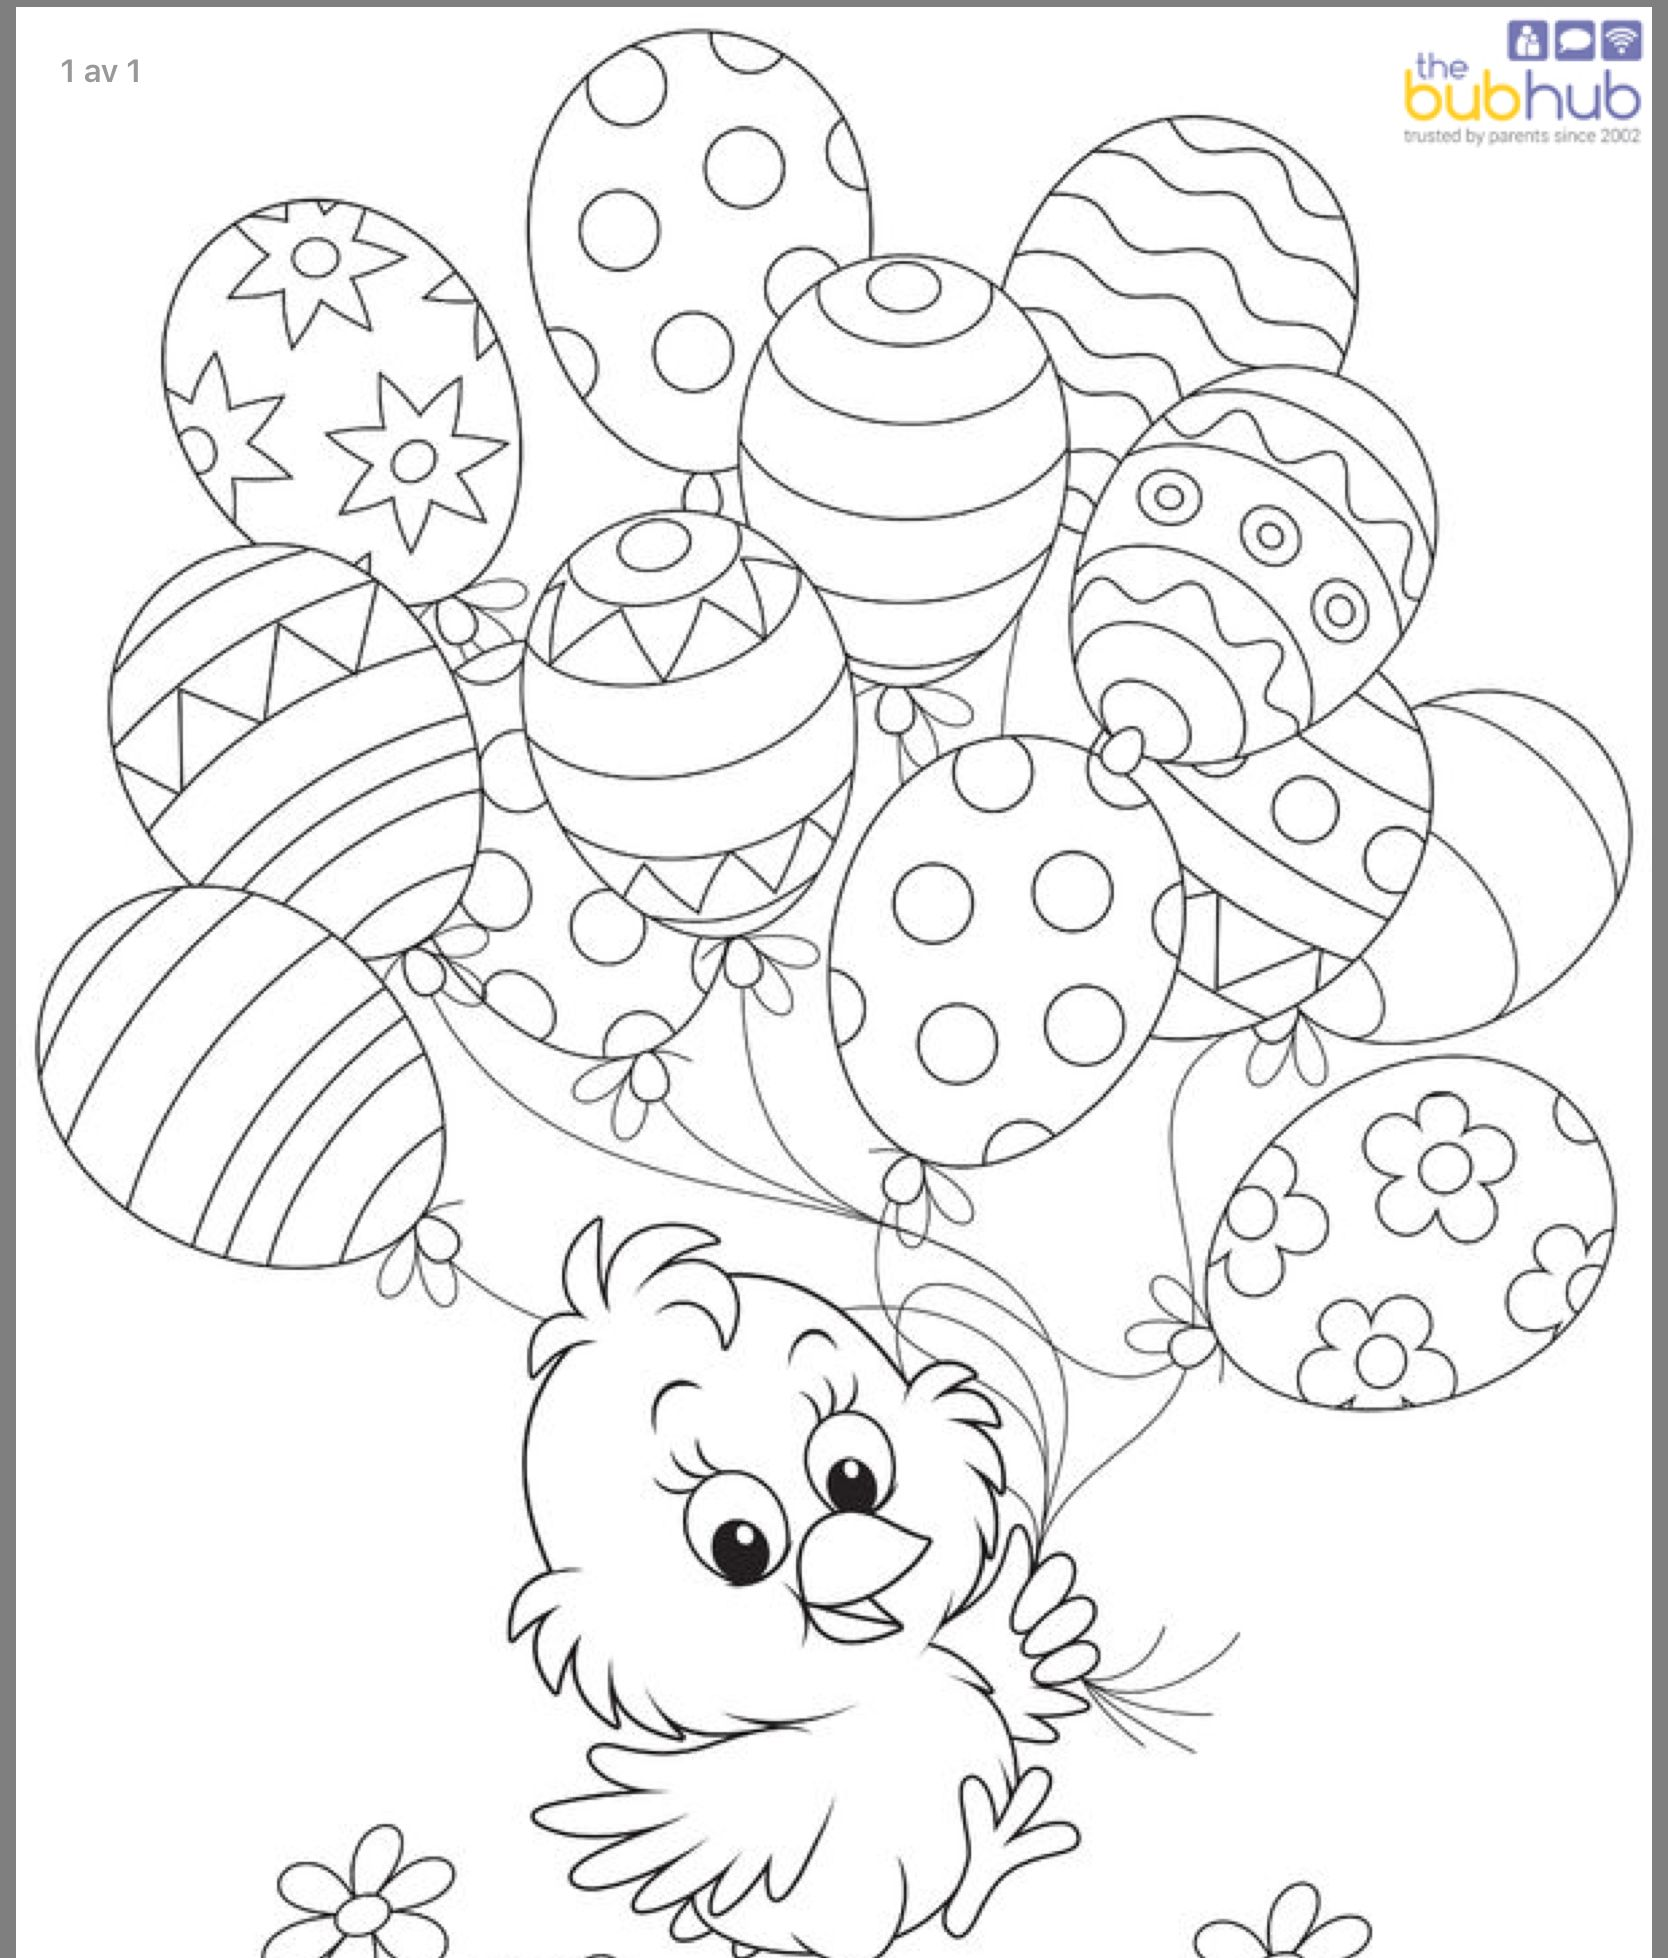 Pin By Karen Barley On Bild Free Easter Coloring Pages Easter Coloring Sheets Easter Colors